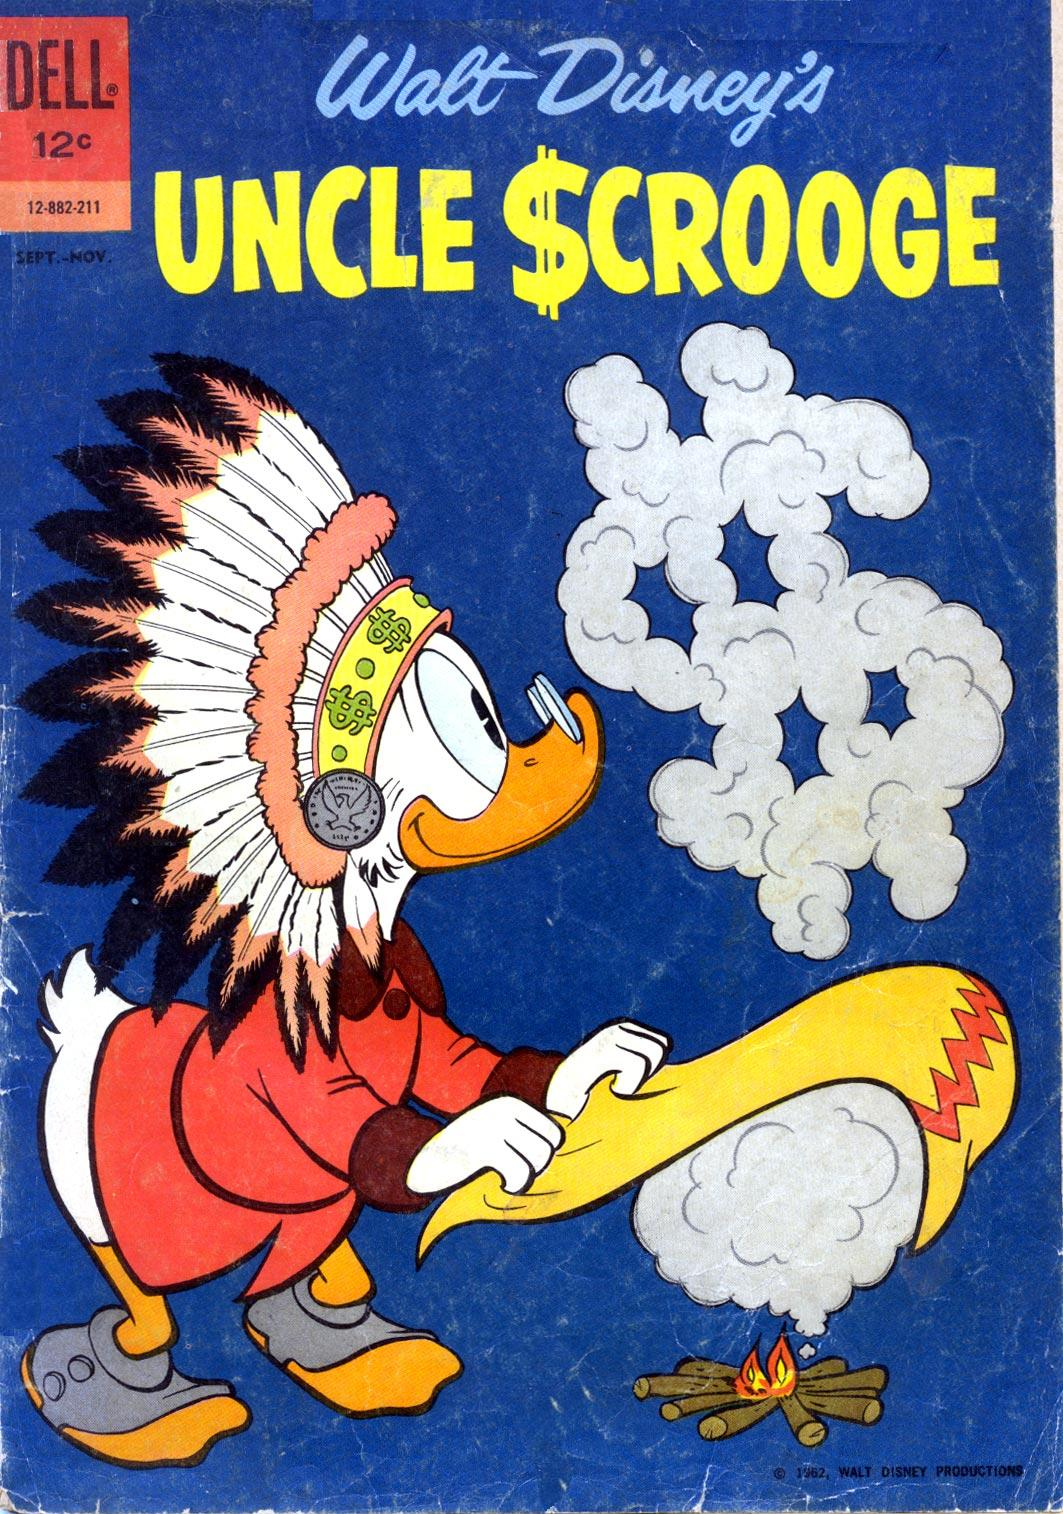 inefree.com/uncle-scroog #366 - English 1